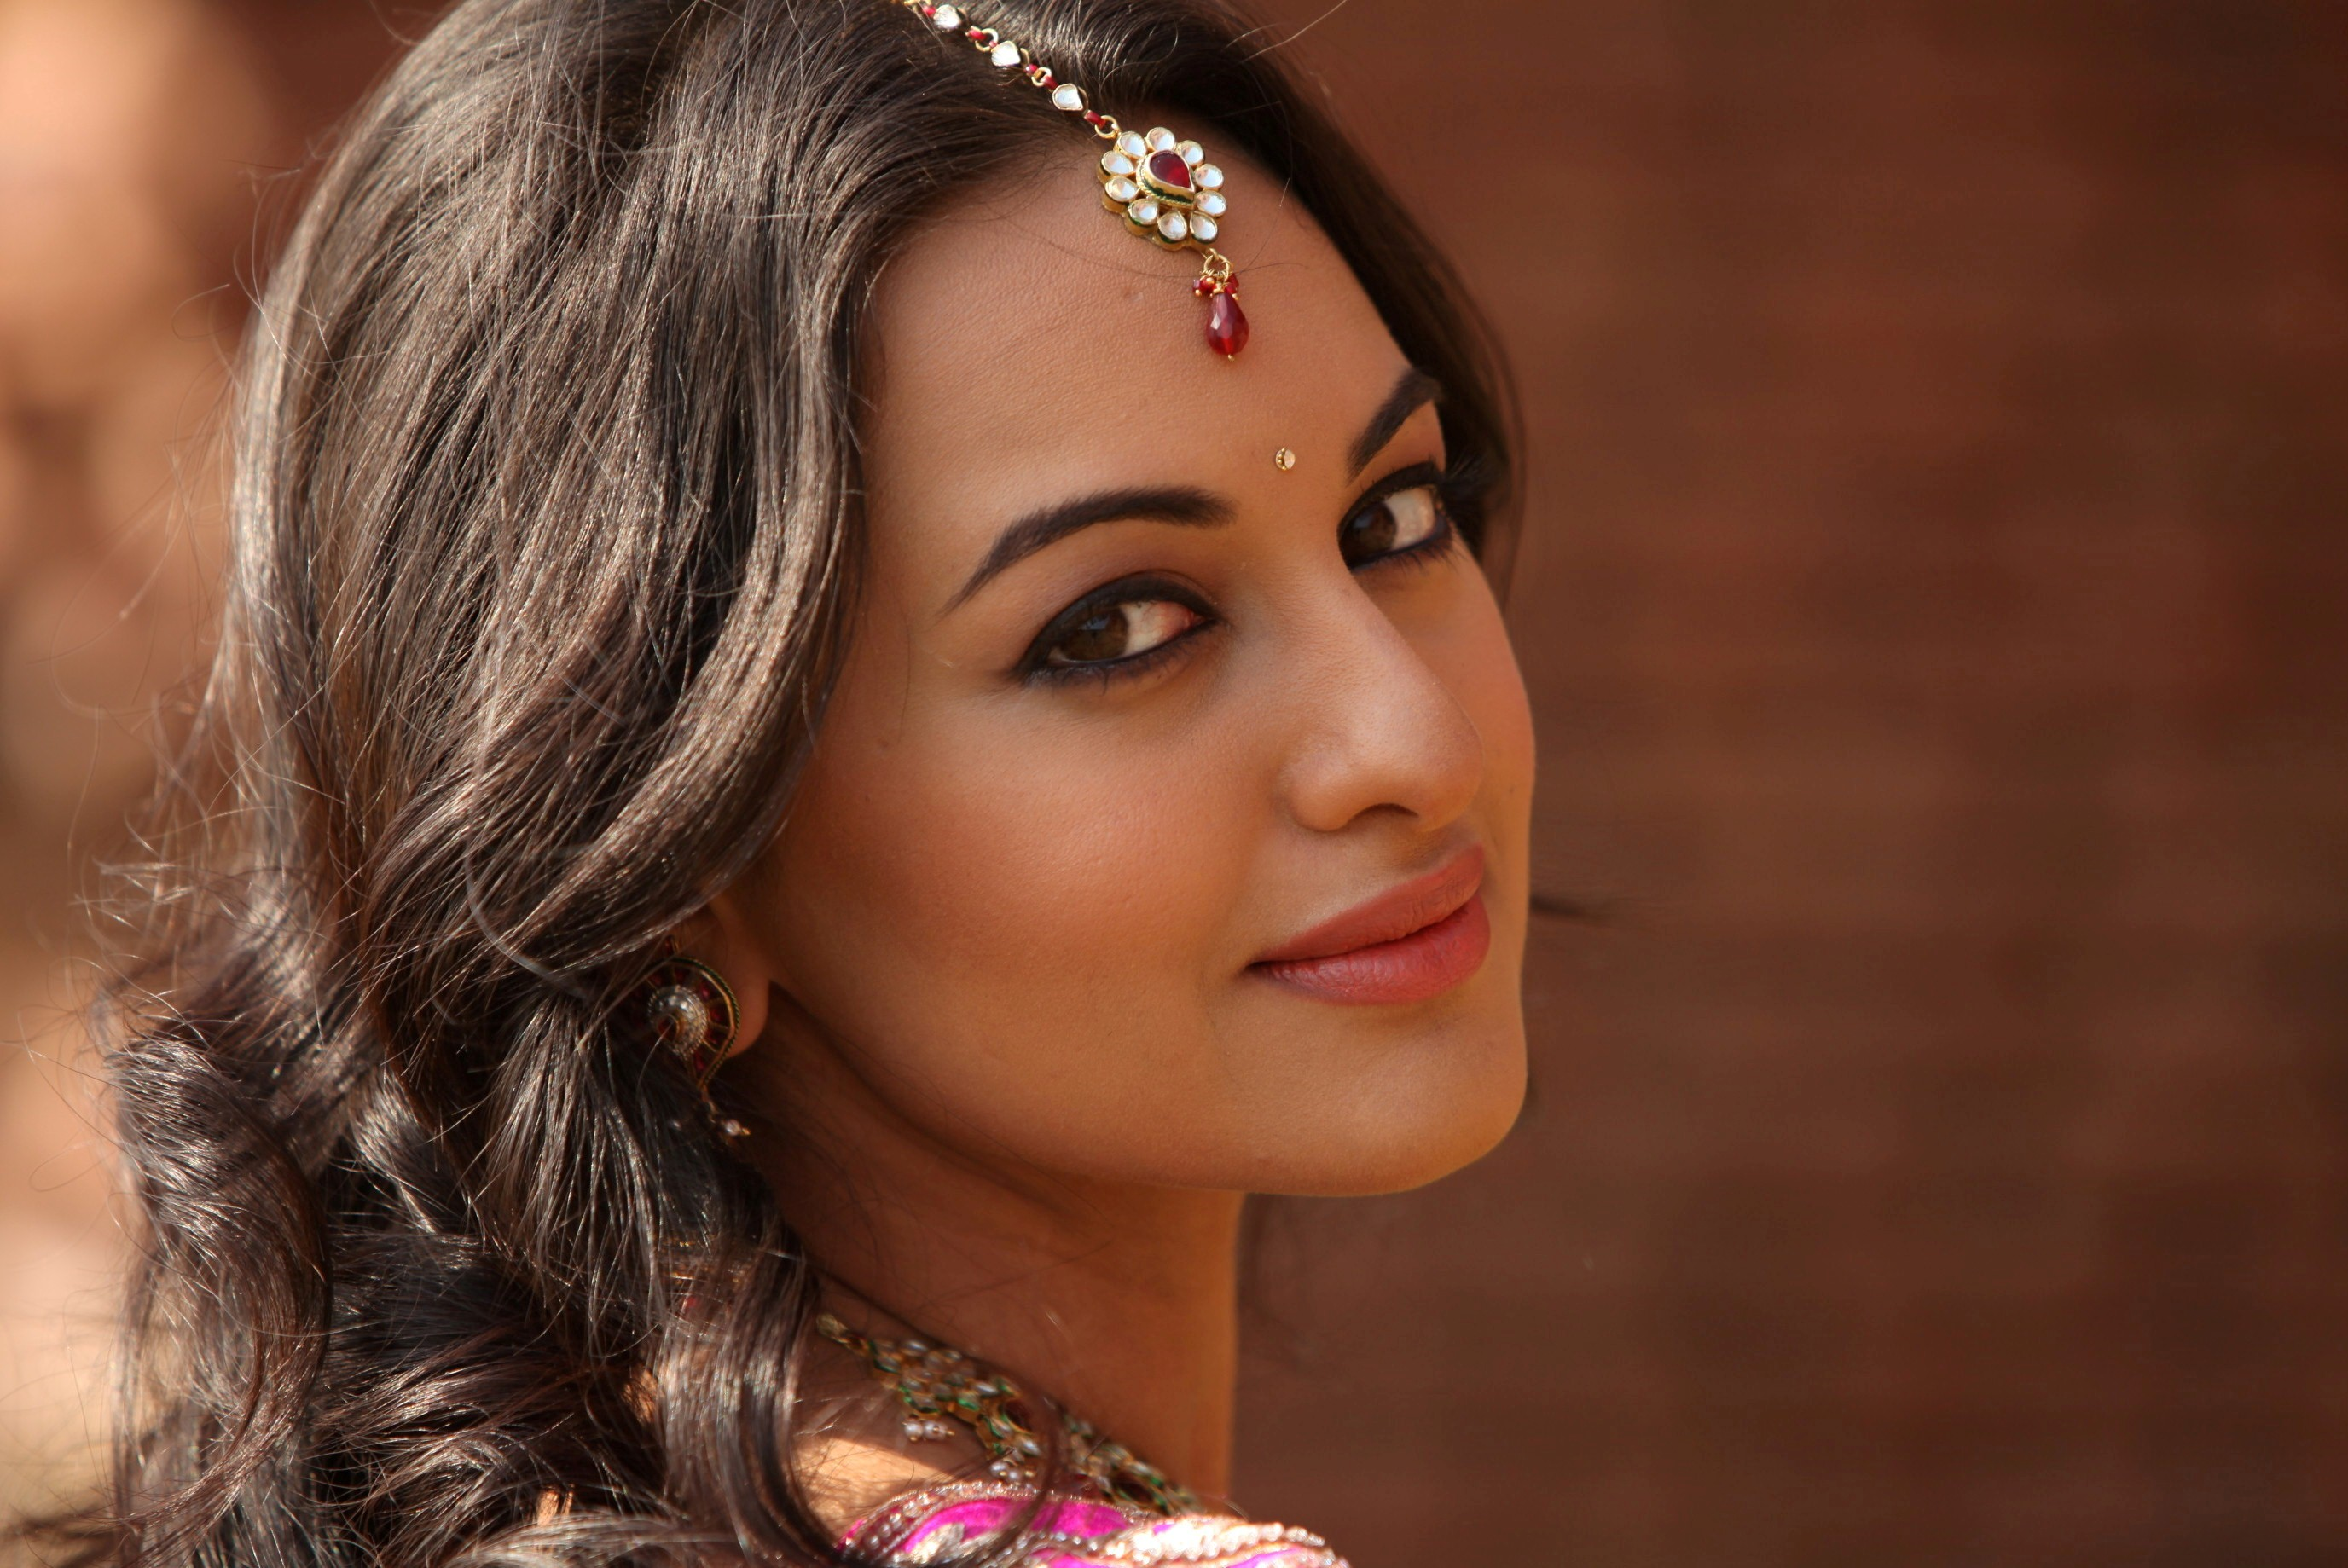 downloads 14824 tags sonakshi sinha actress celebrities bollywood 2753x1839